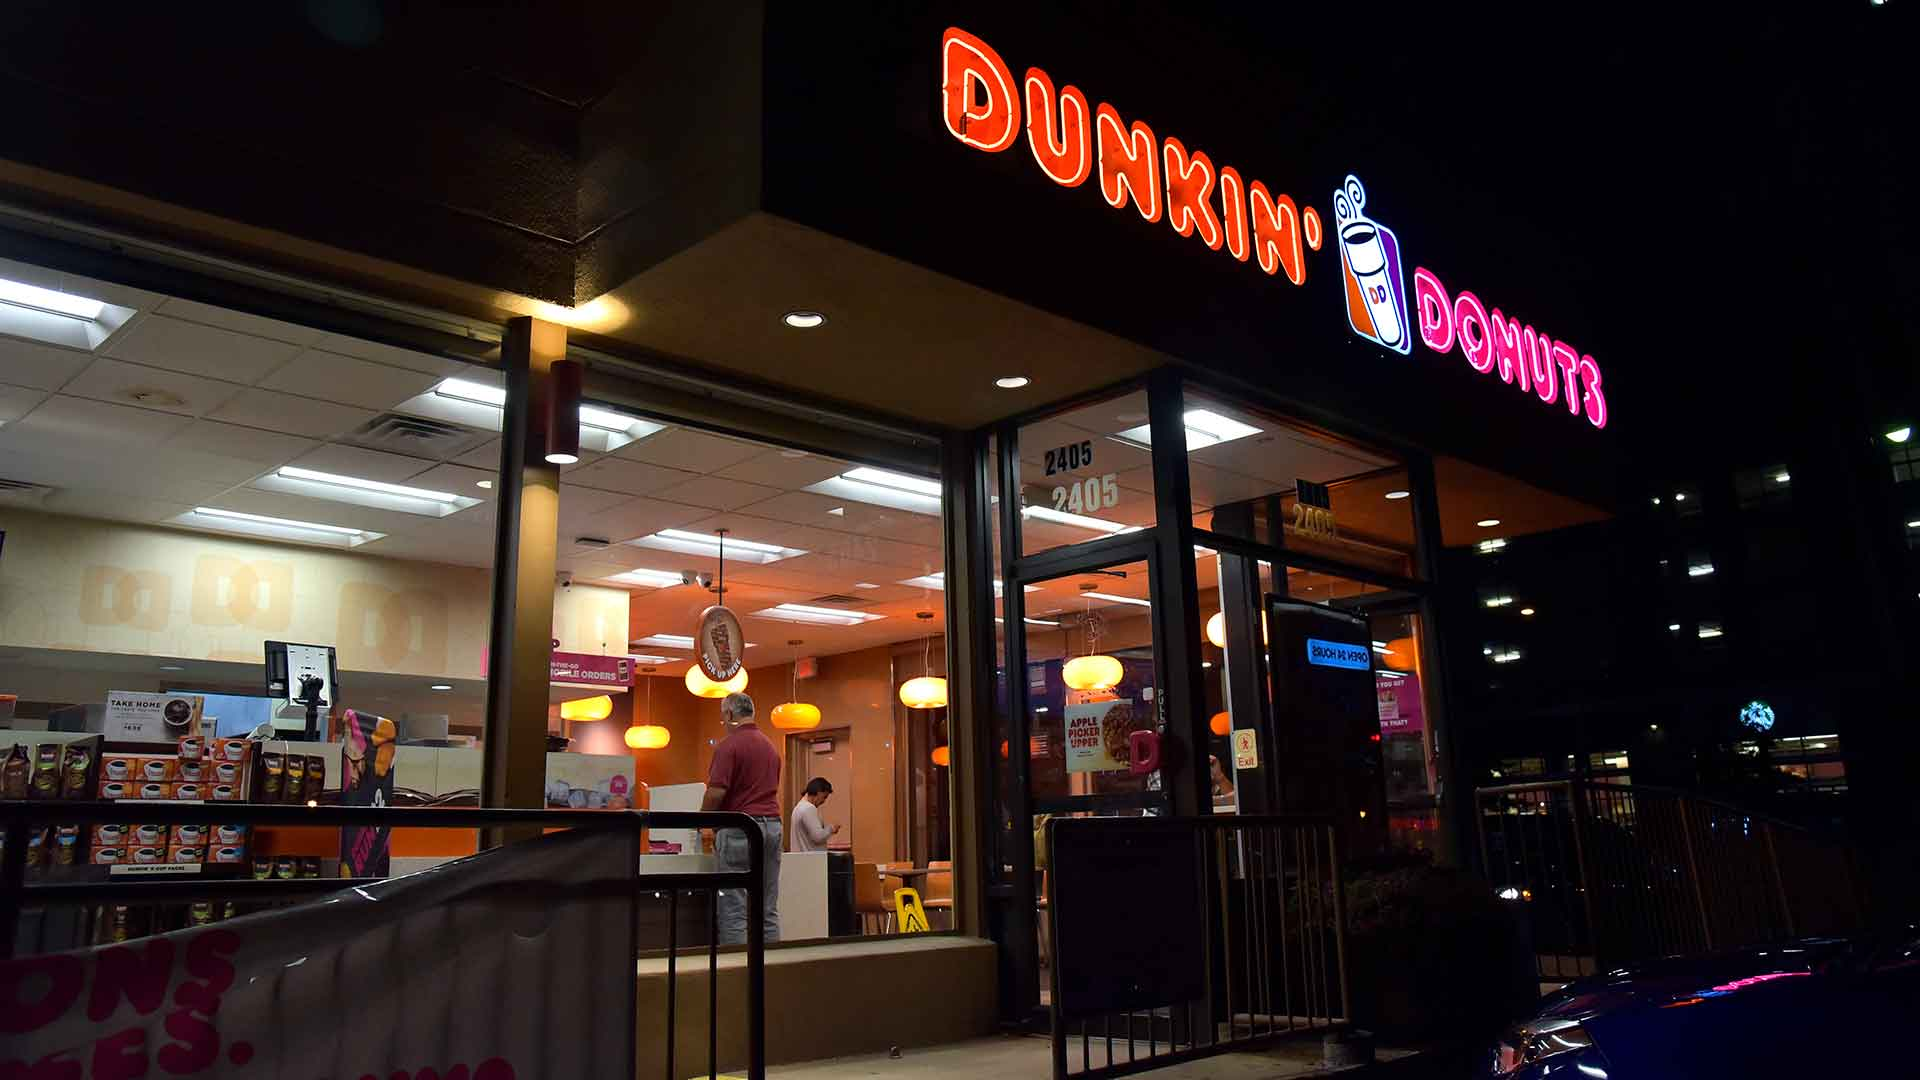 Dunkin' Donuts, Washington, DC